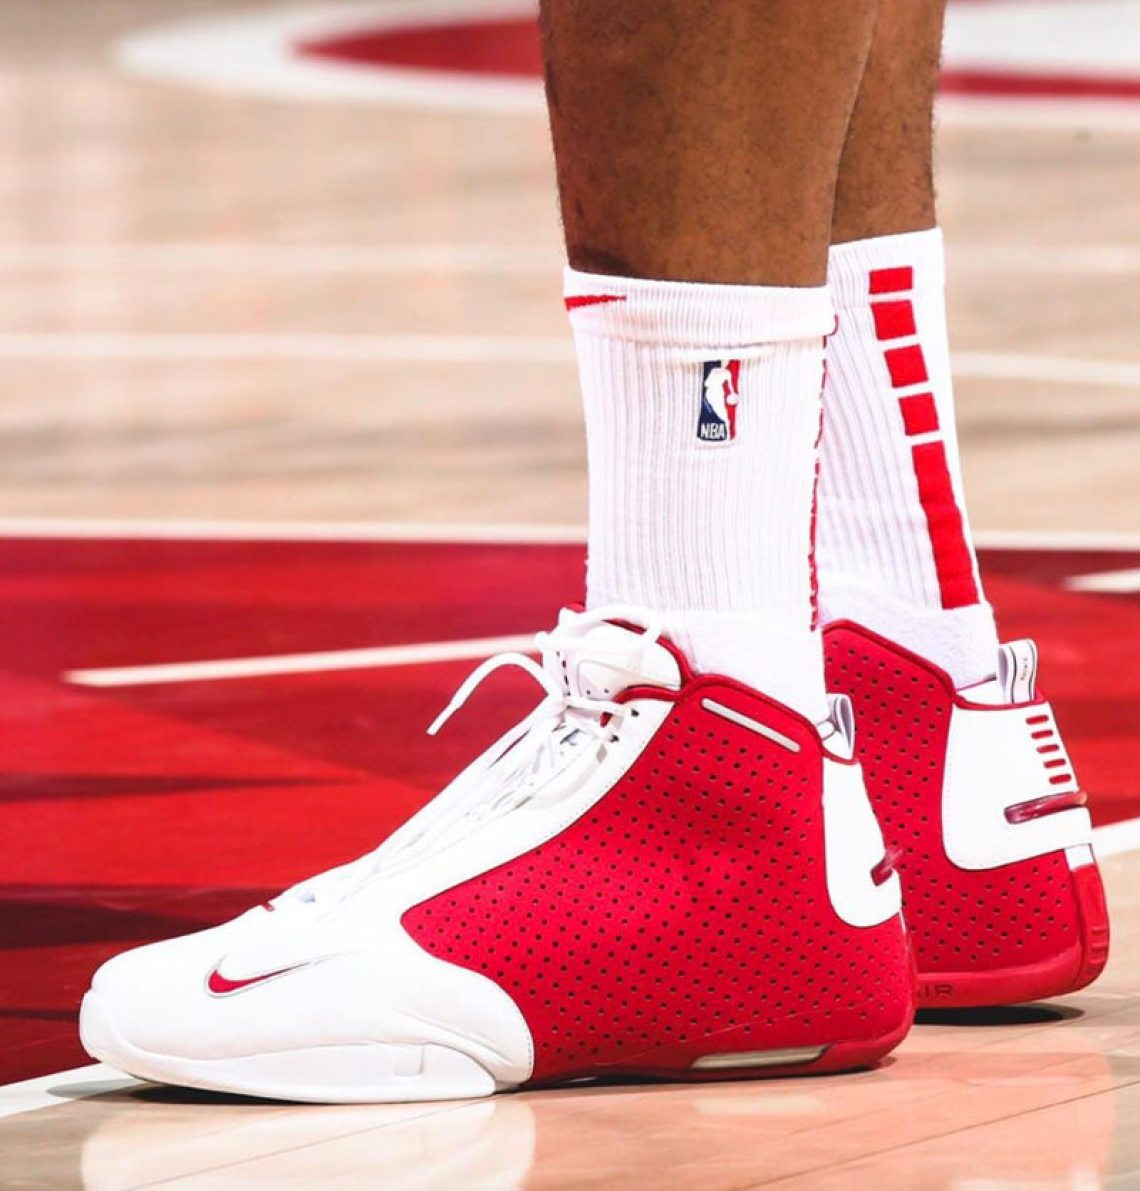 739c1fb1cd91 ... PJ Tucker in the OG Nike Air Zoom Flight 2k3 (photo by Jasear  Thompson NBAE via Getty Images) ...